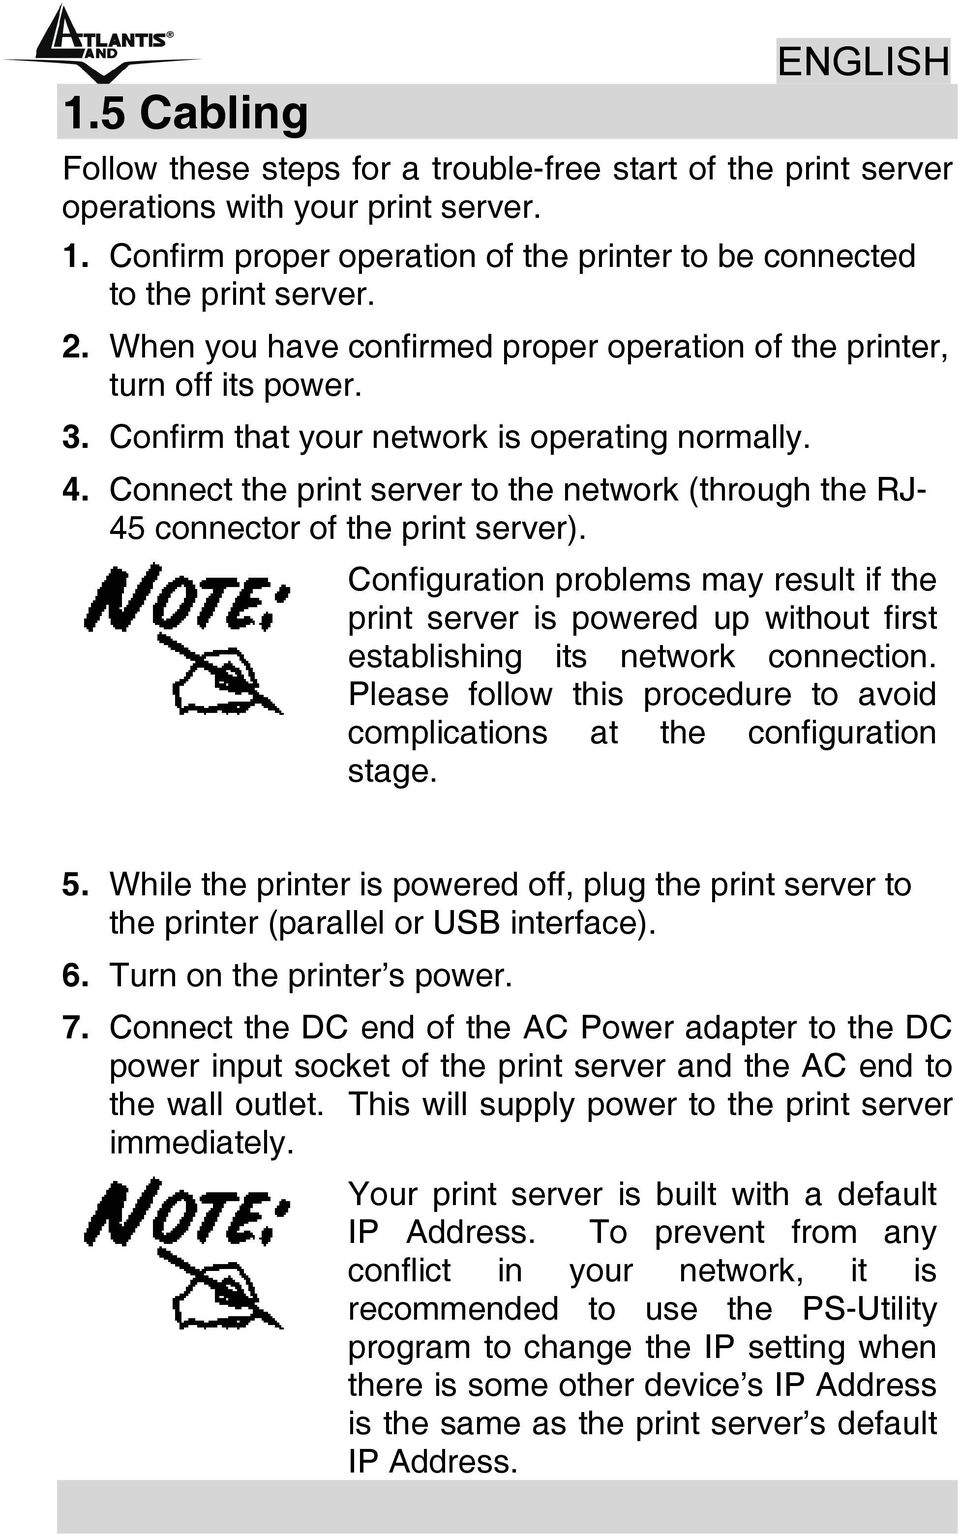 Connect the print server to the network (through the RJ- 45 connector of the print server).